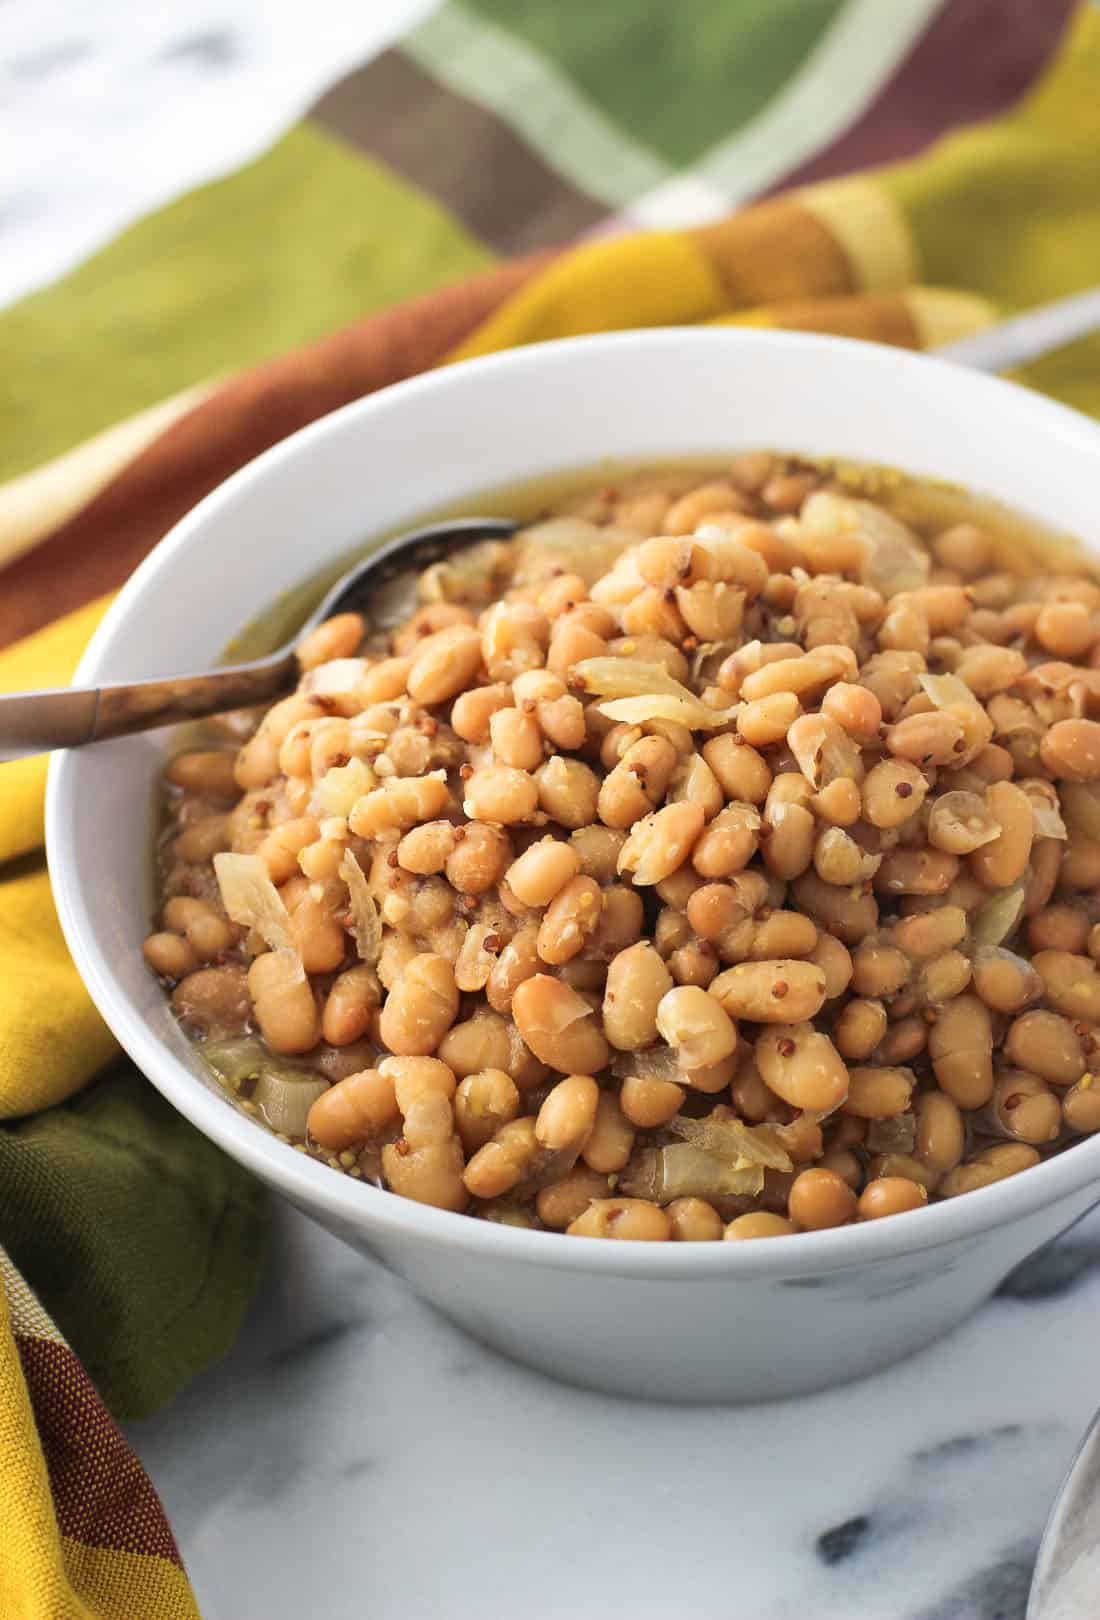 Slow cooker white beans are cooked in a whole grain mustard beer sauce for a flavorful and healthy side dish. This is a hearty crock pot recipe with easy prep!